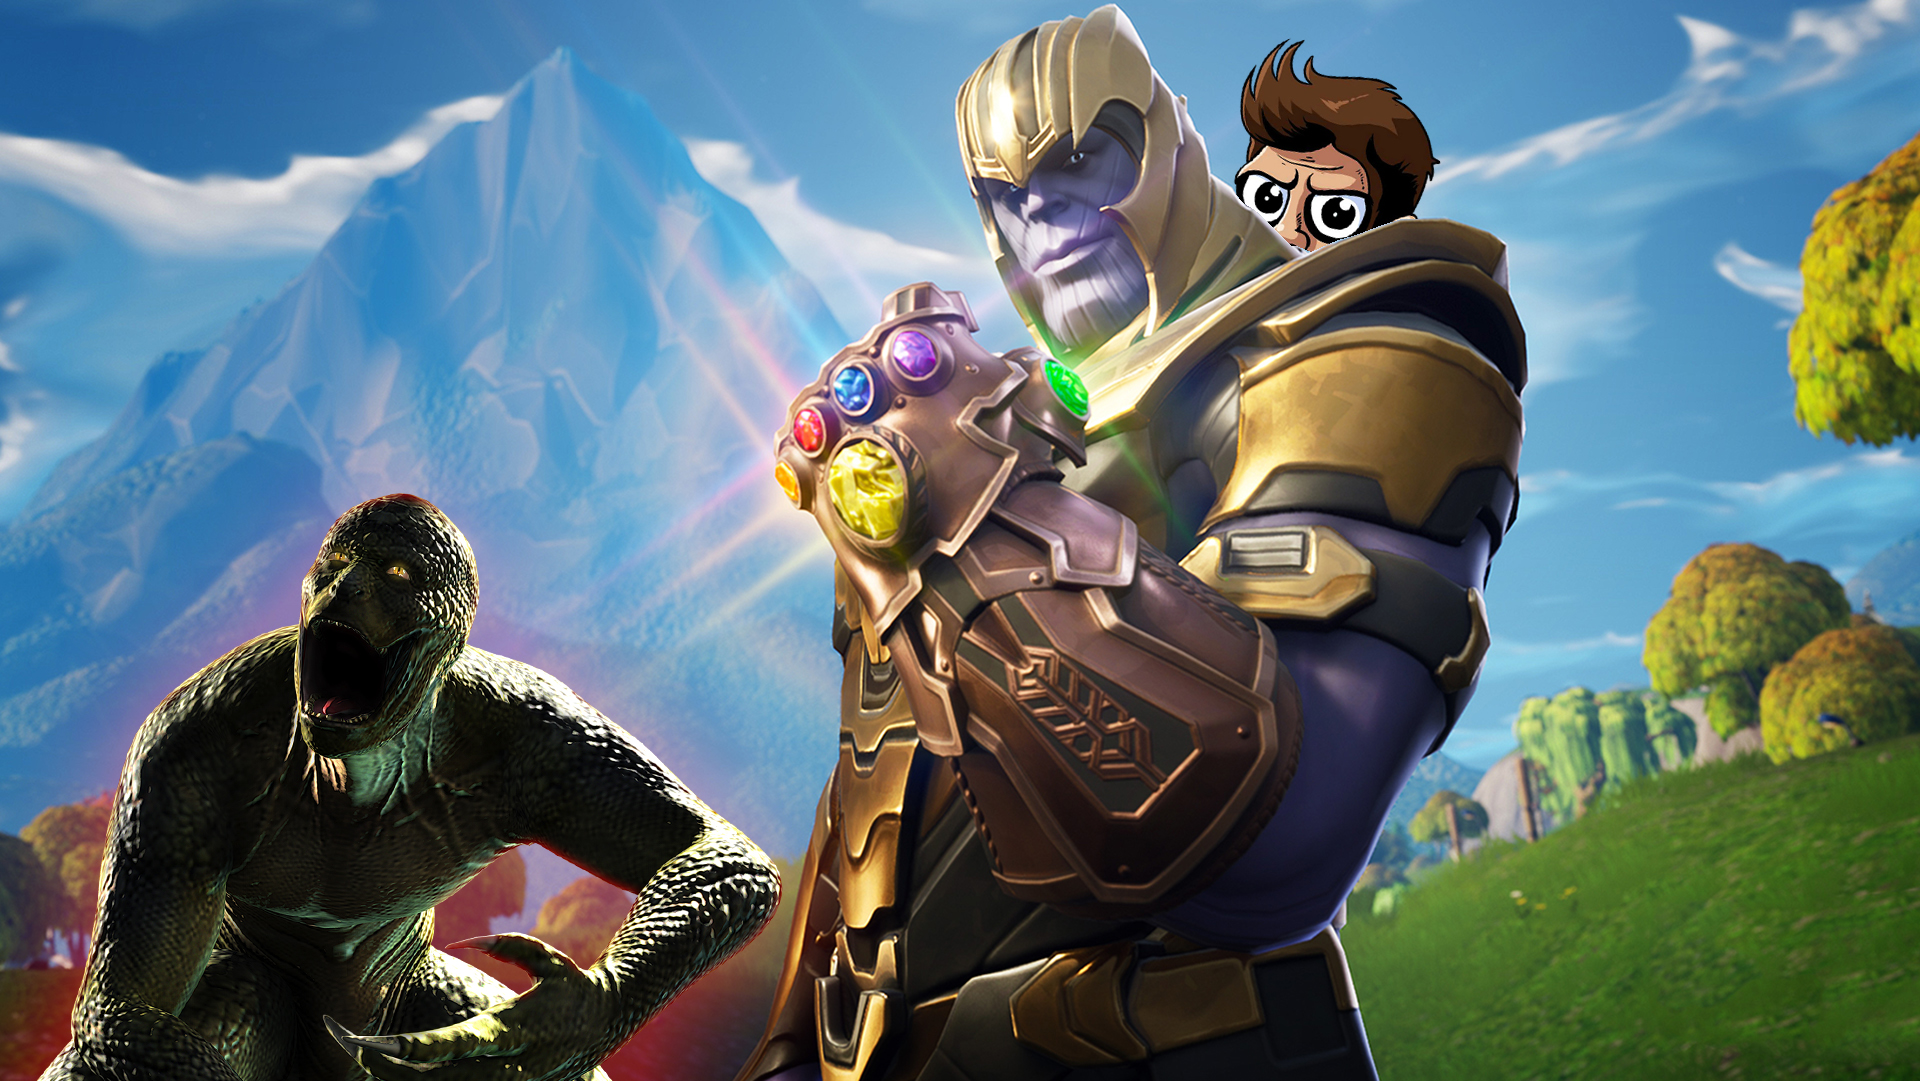 In today's episode of Pregame Discharge, the hollow earth lizards who made Fortnite are teaming up with the Avengers screenshot